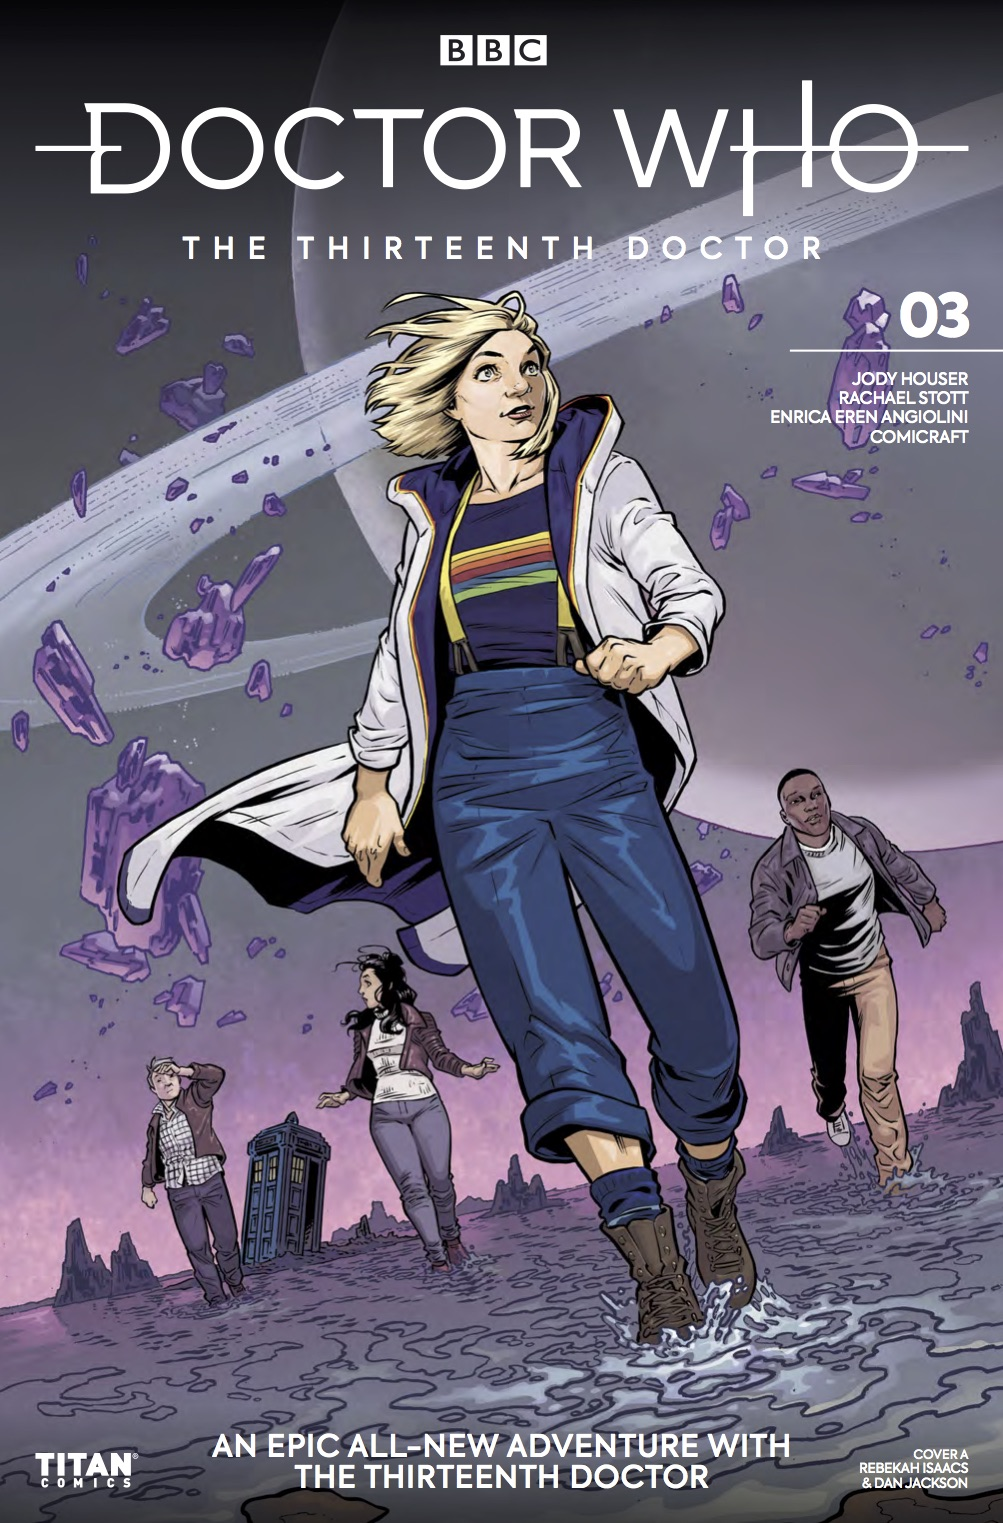 Titan Comics - Doctor Who: The Thirteenth Doctor #3 - Cover A: Rebekah Isaacs & Dan Jackson